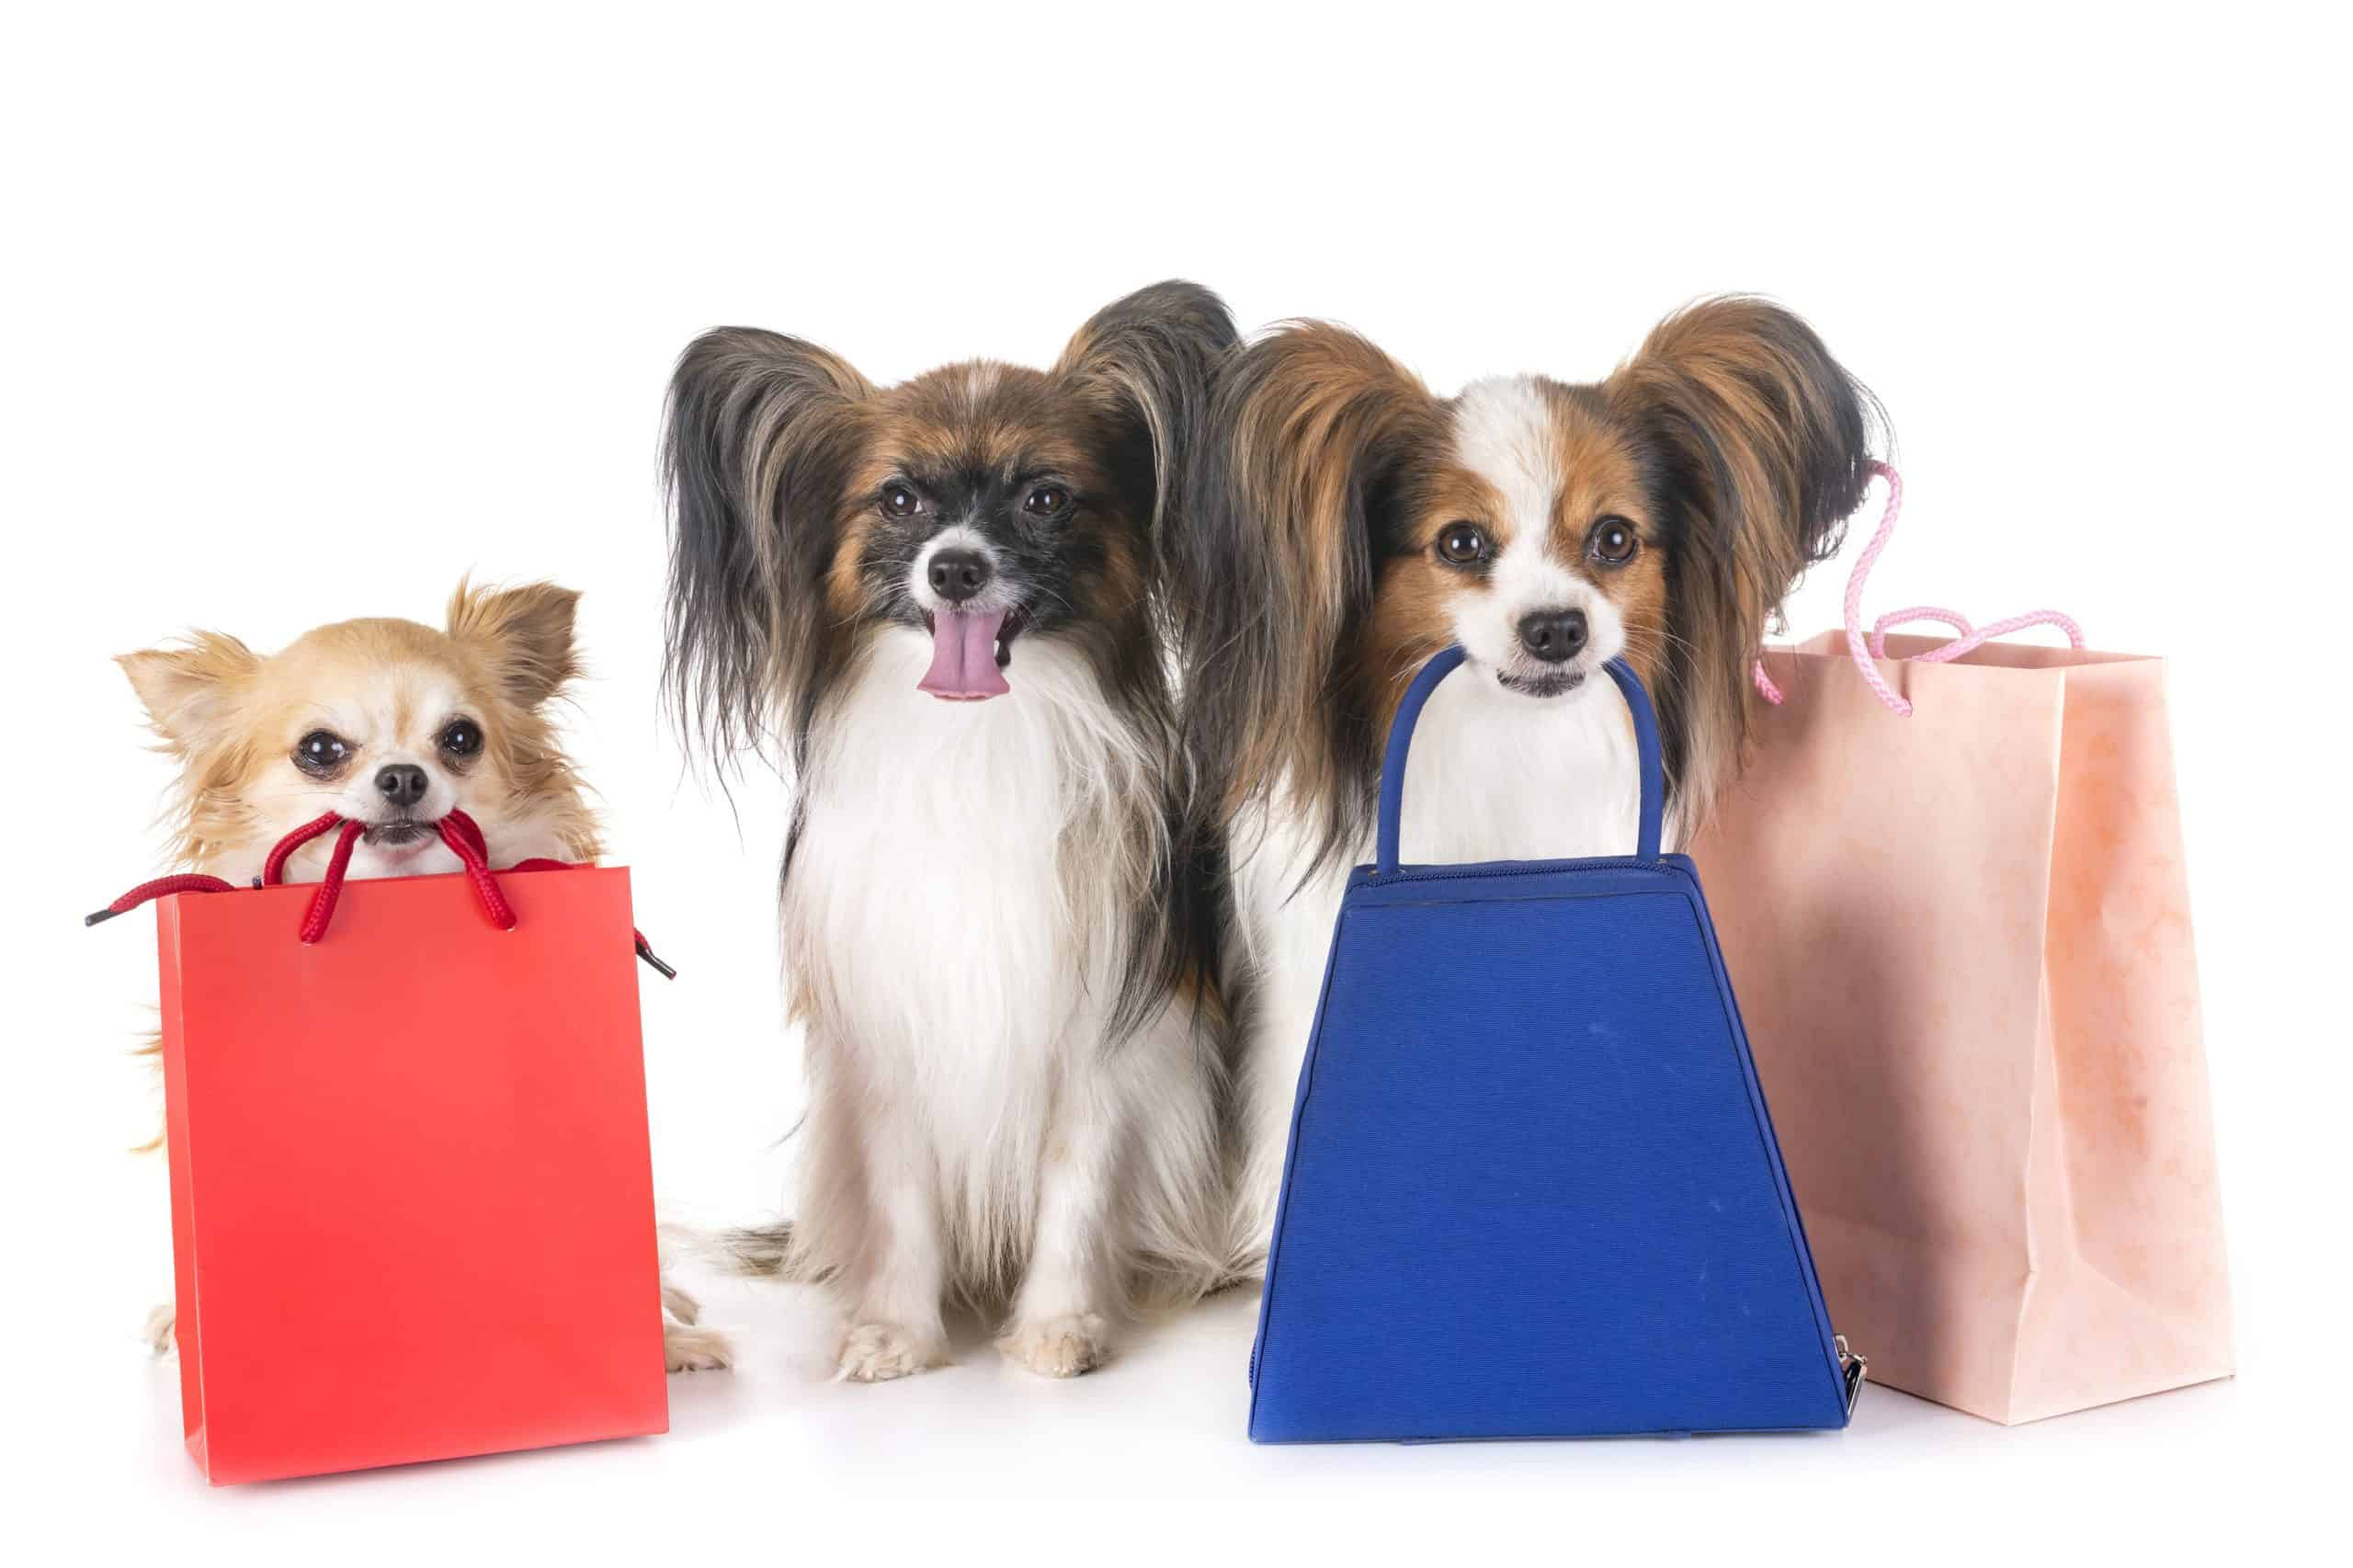 Chihuahua and Papillions sit with shopping bags. When shopping for your furry buddy select a pet boutique that curates its collection, understands pets, and offers a convenient refund policy.